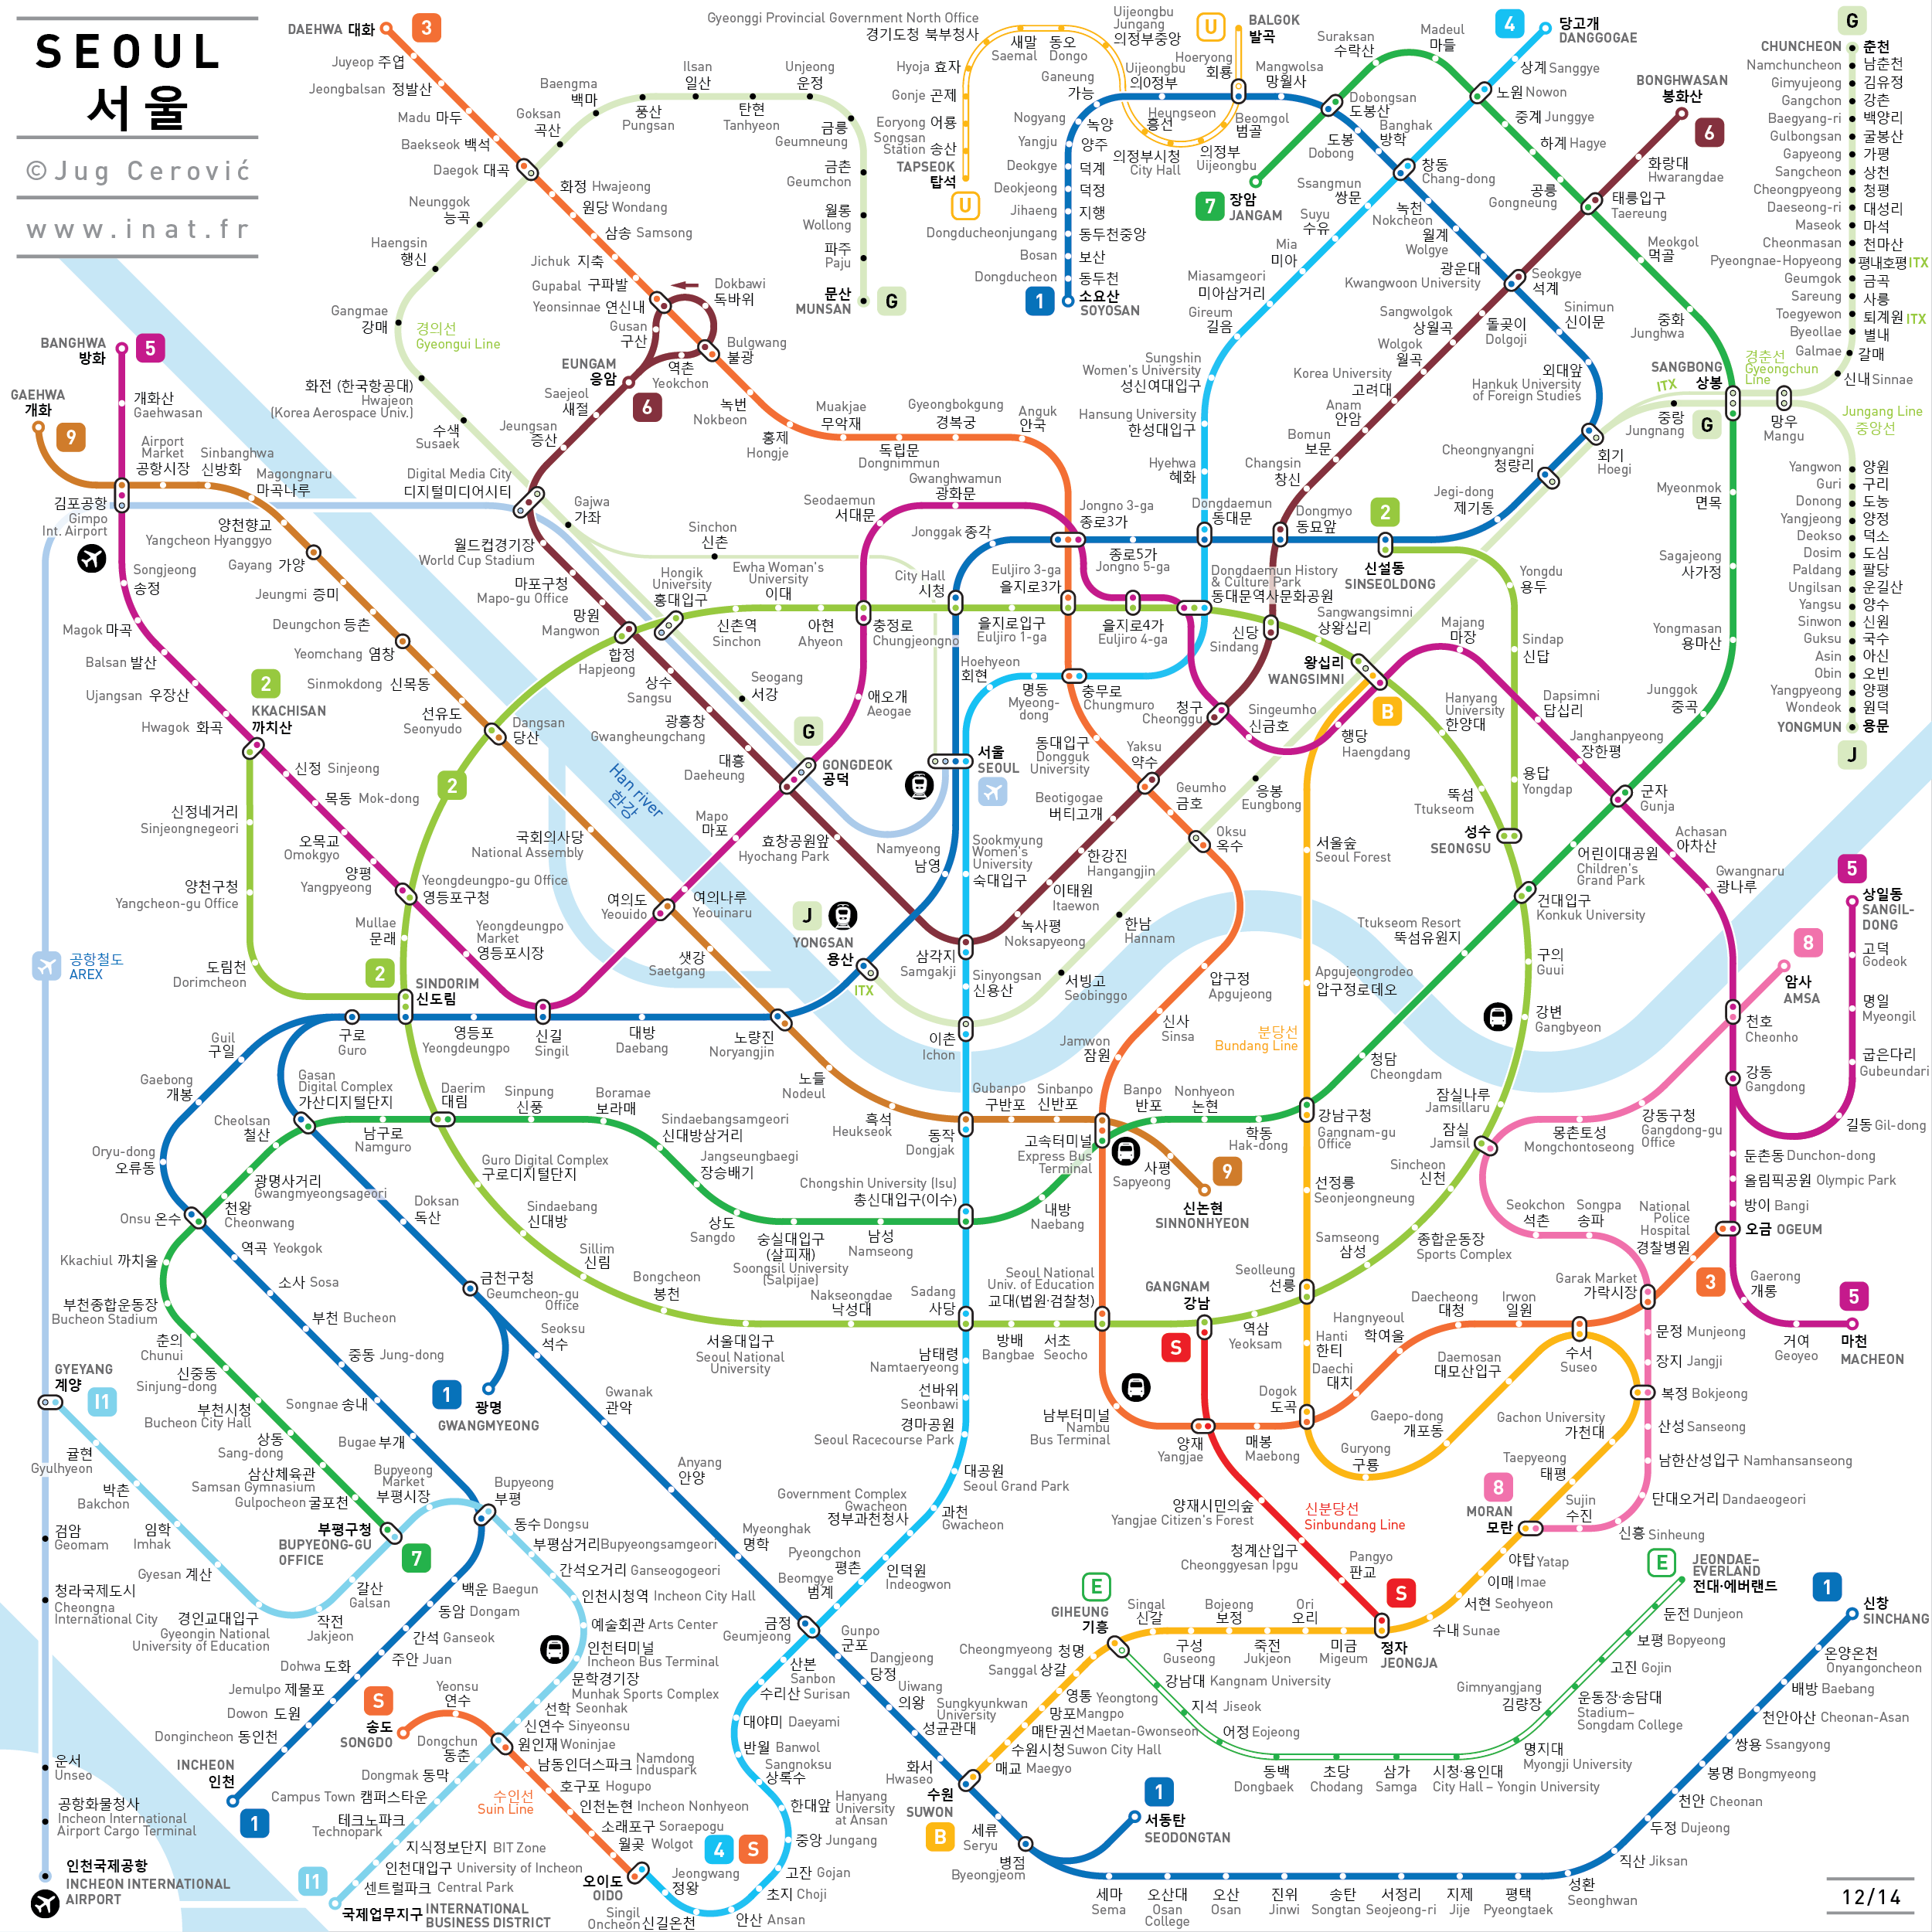 Seoul Metro Subway Map